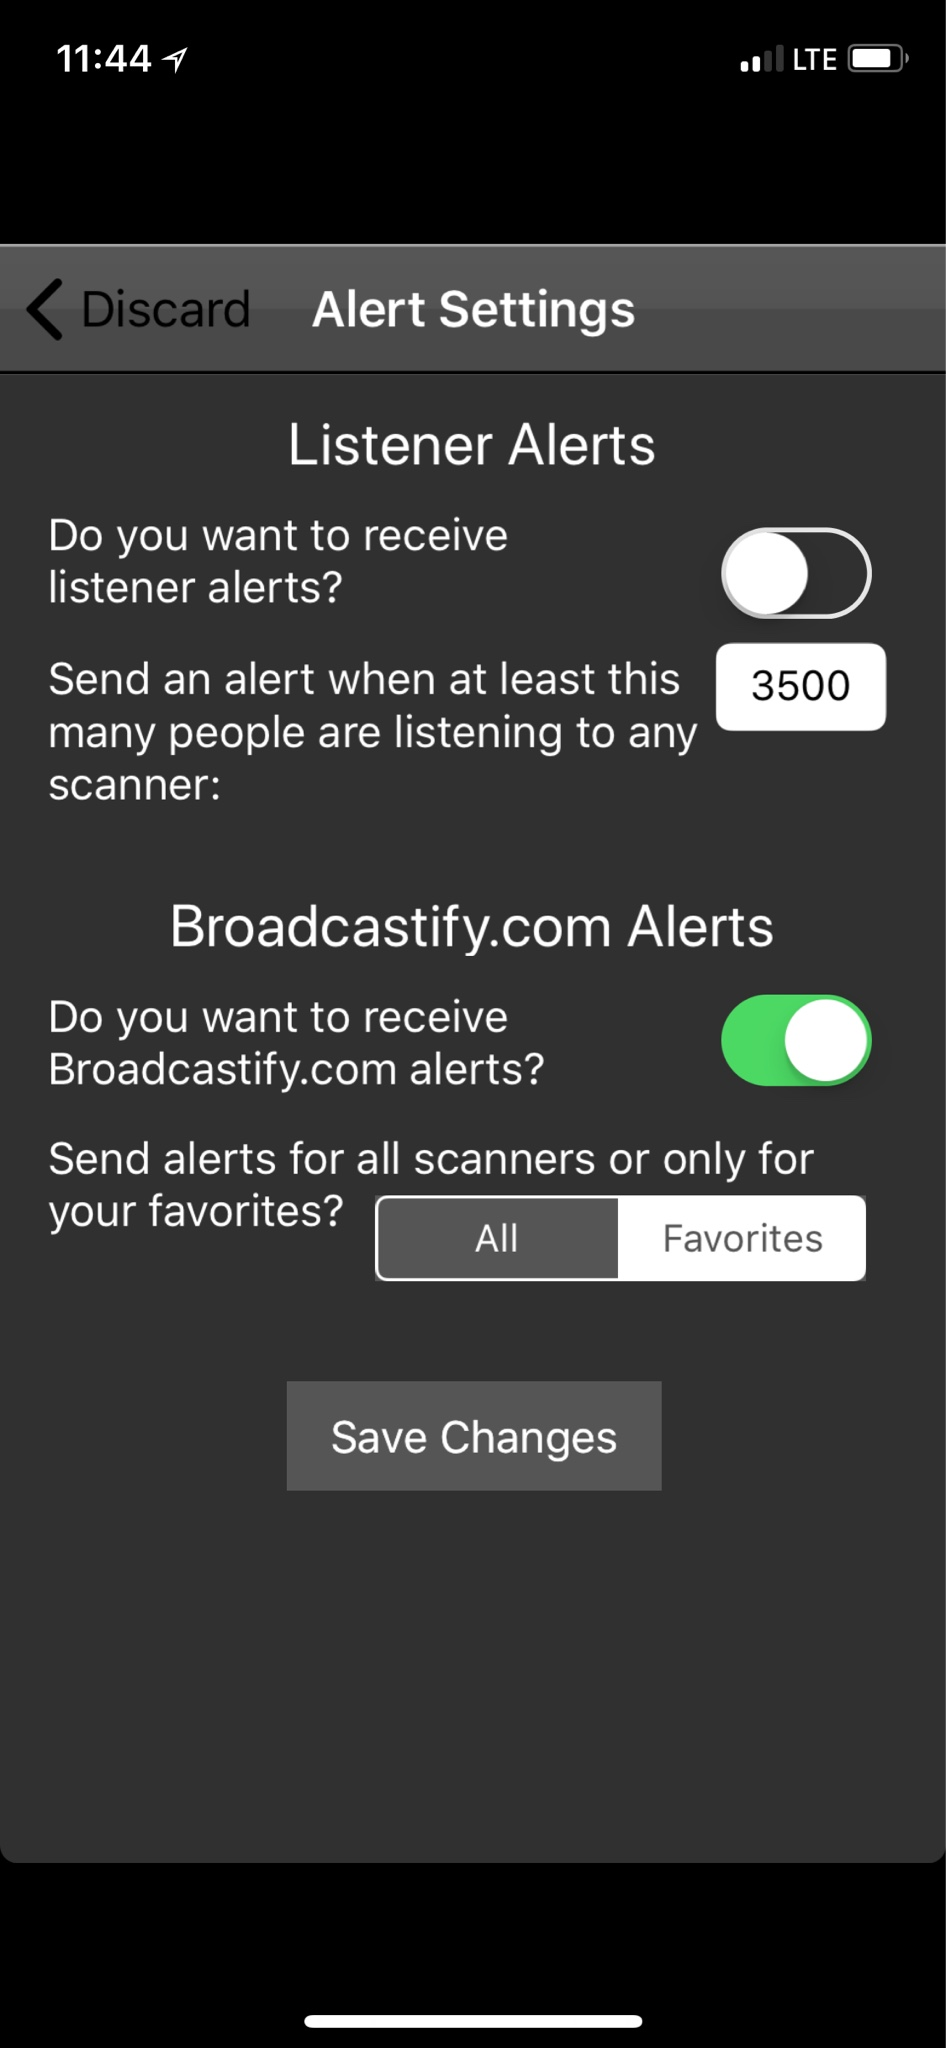 Broadcastify iphone app and getting alerts | RadioReference